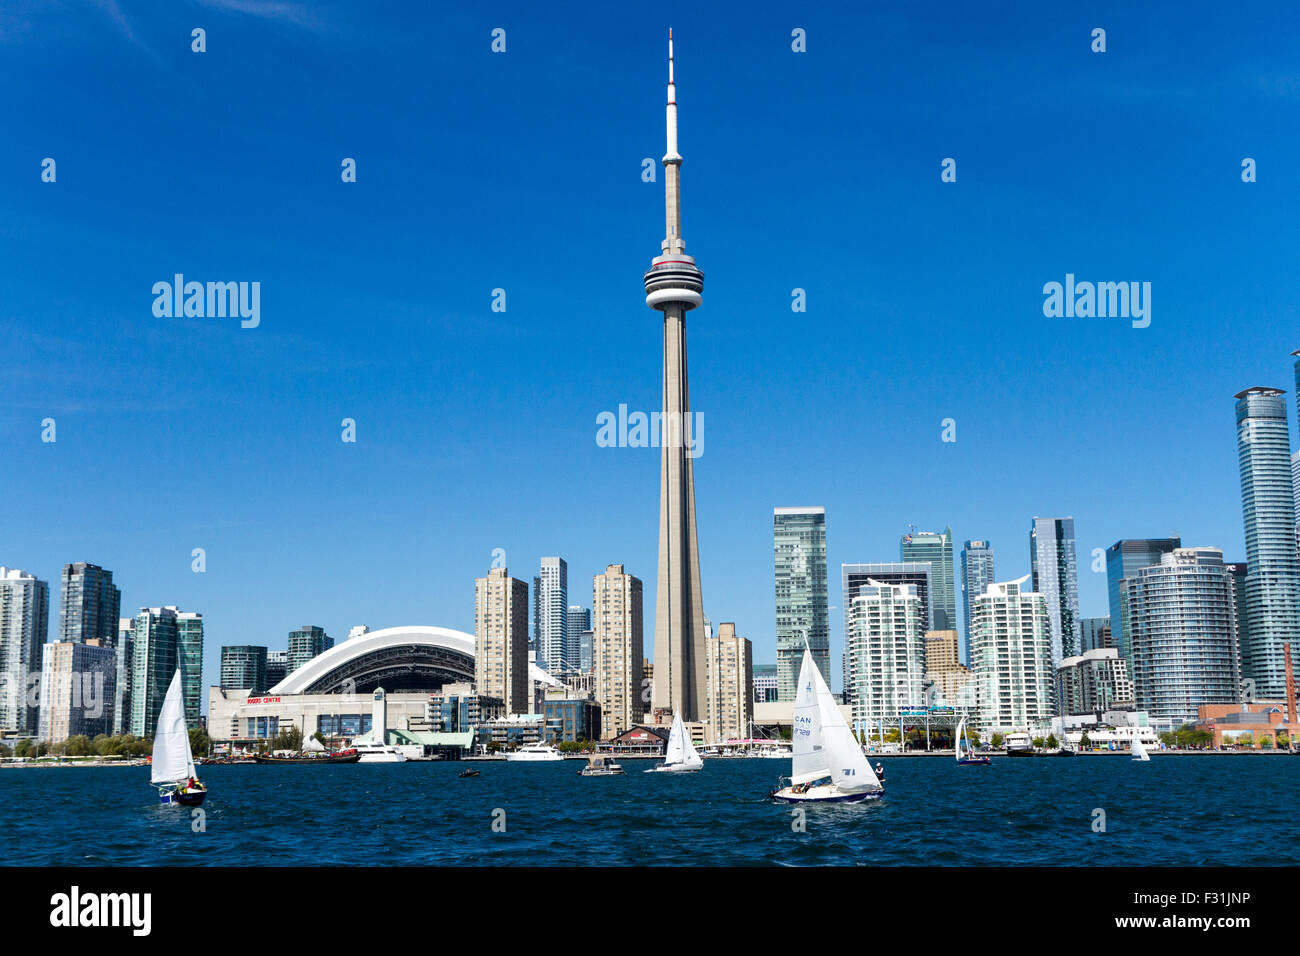 toronto-city-skyline-along-lake-ontario-